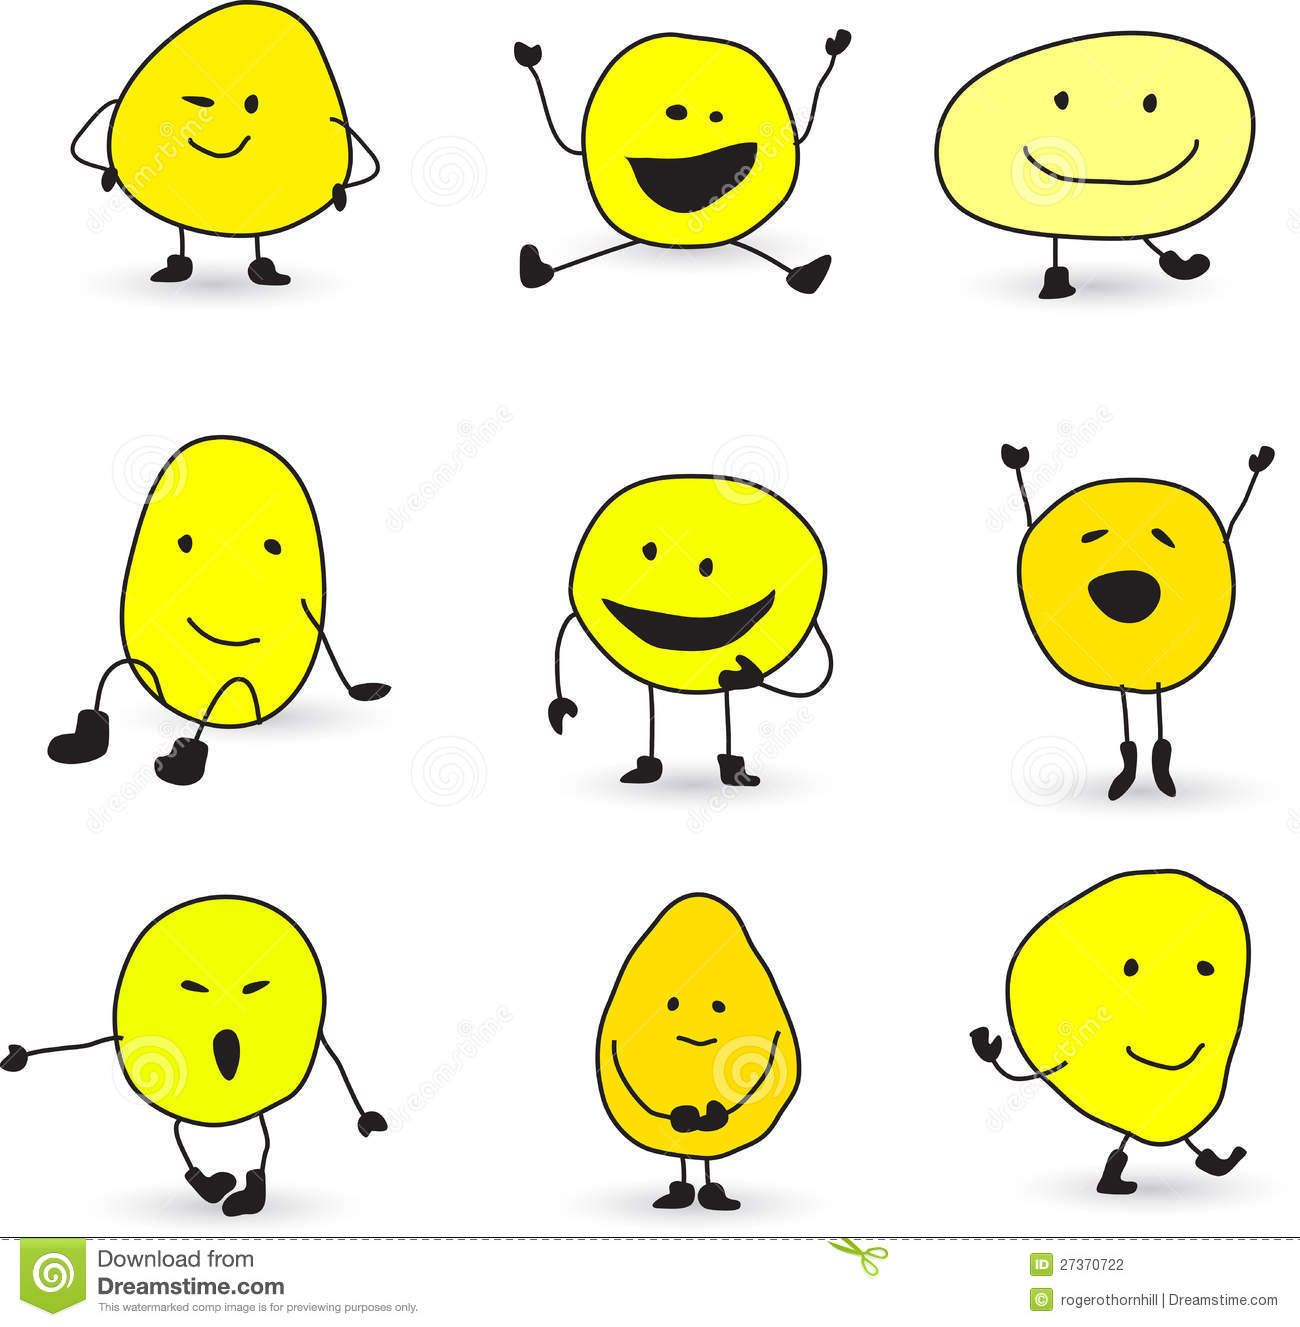 Cute Smiley Face Characters Download From Over 36 Million High